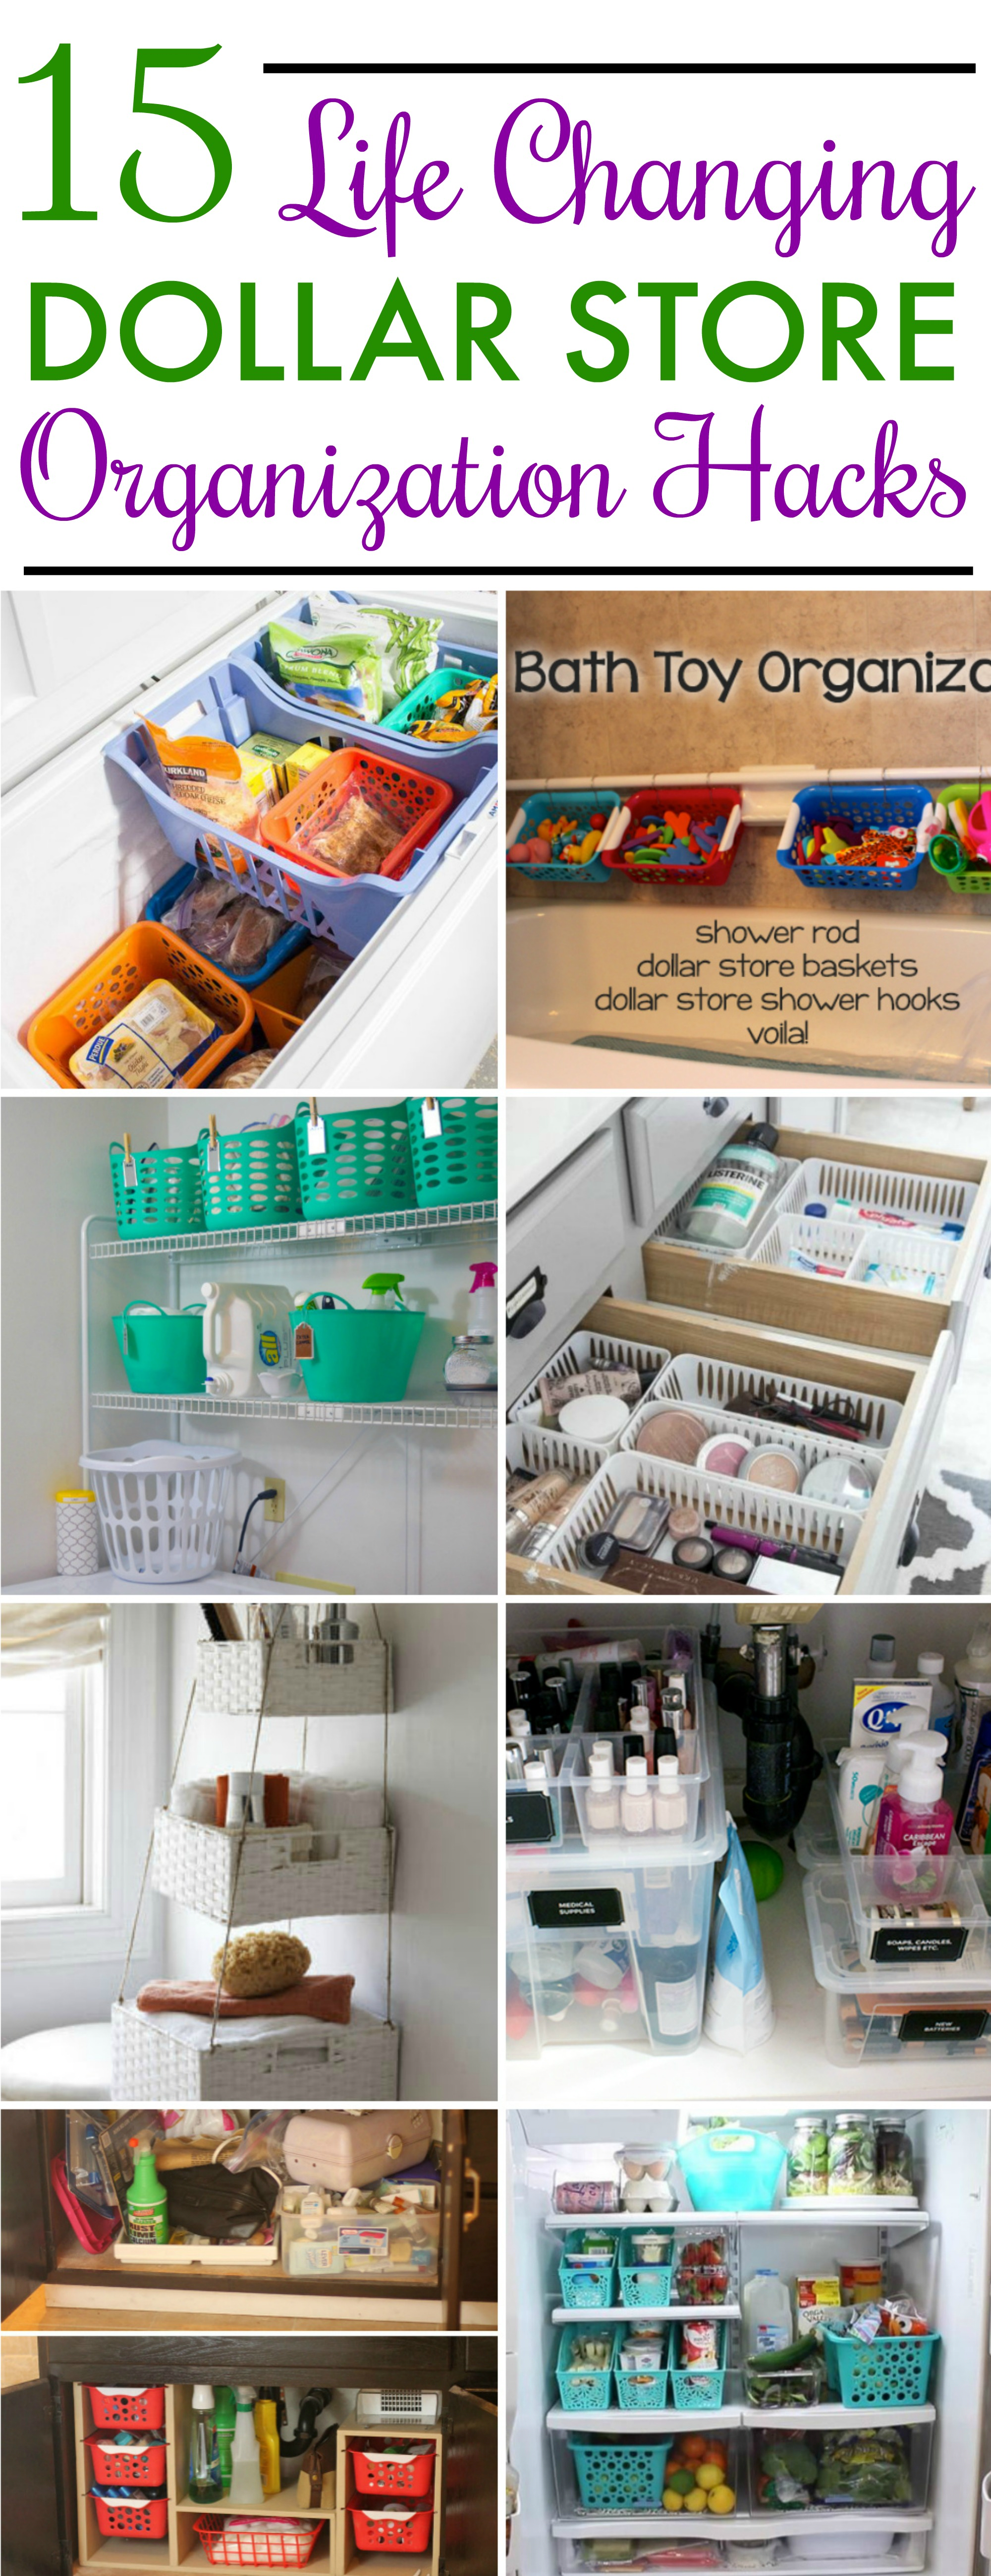 Stock Room Design: 15 Dollar Store Organization Ideas For Every Area In Your Home